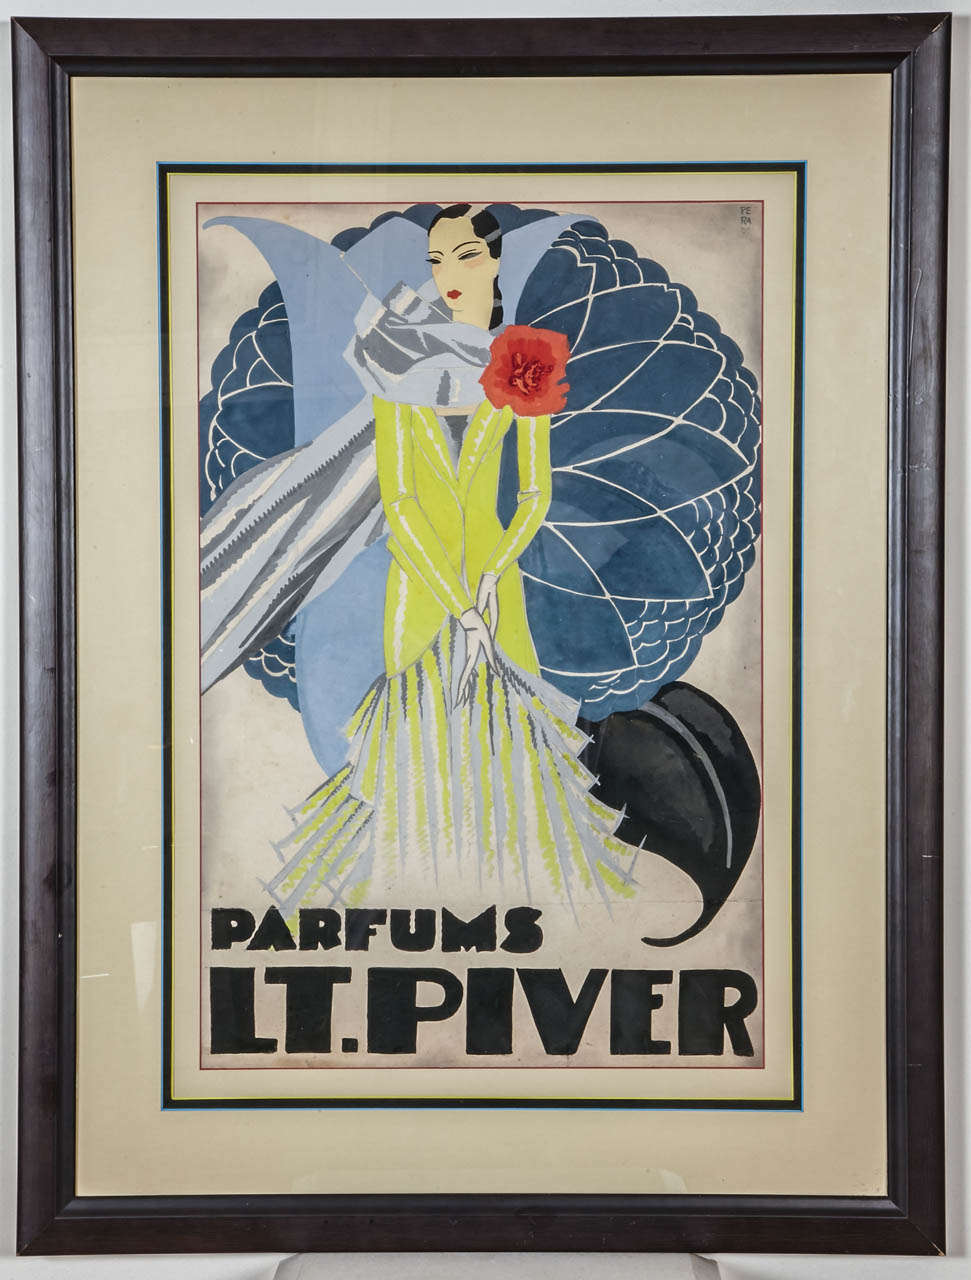 Original watercolor for an advertising project for the LT. Piver perfumes. PERA signature on the top right front. Circa 1925. Dimension without frame and at sight: 38cm x 58cm.